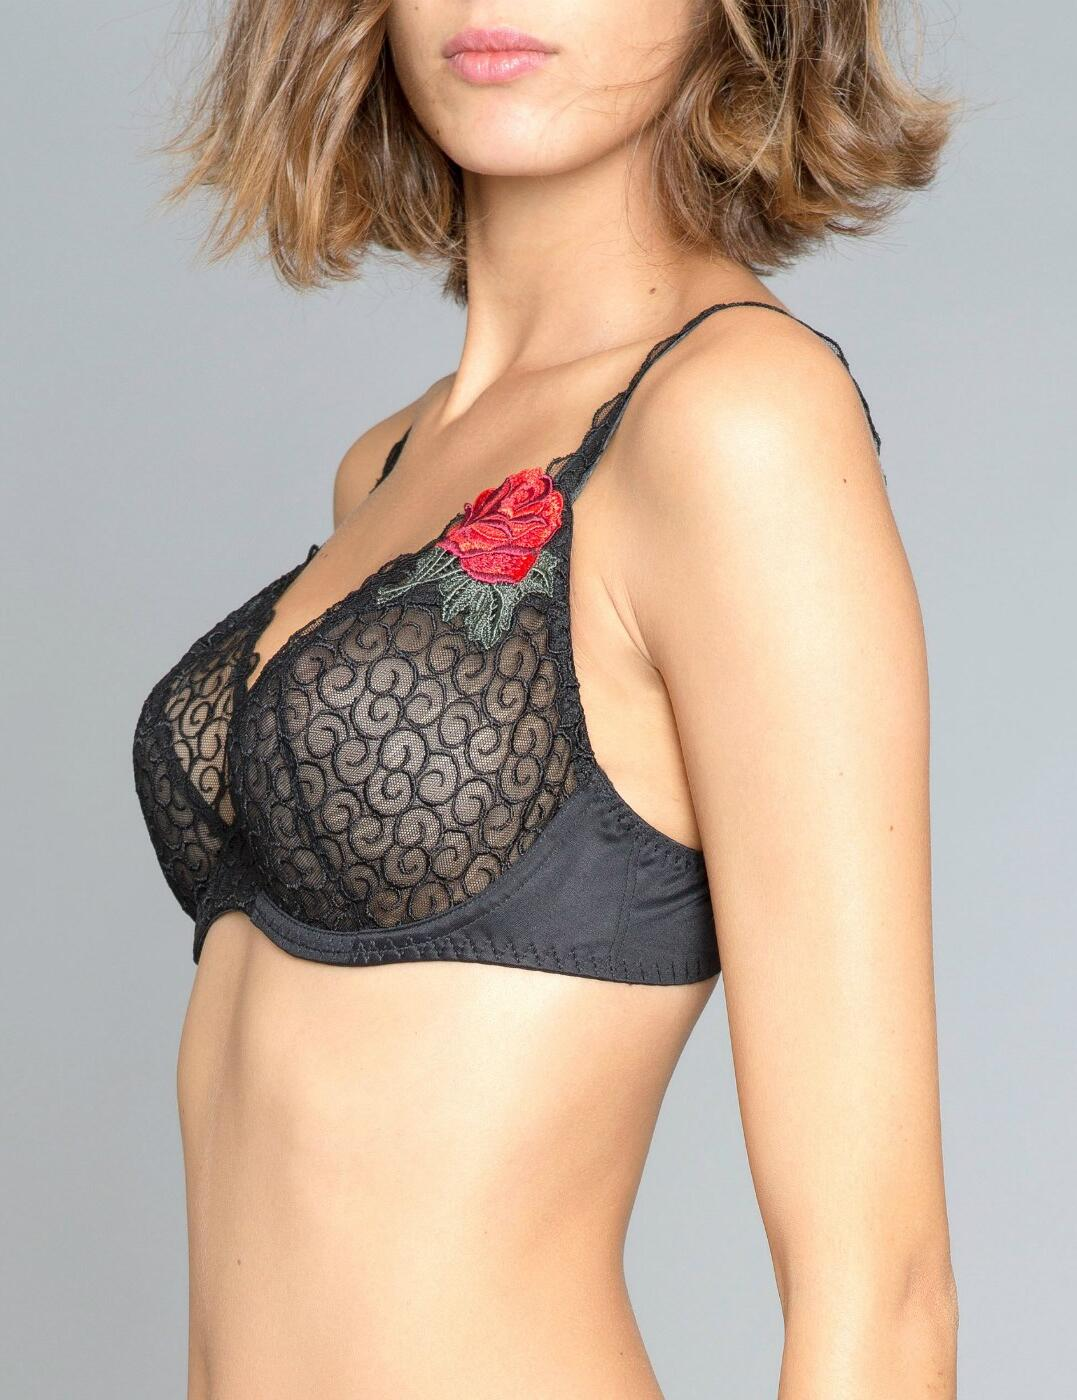 Maison Lejaby Rosae 3 Part Underwired Full Cup Bra 51633 New Luxury Lingerie